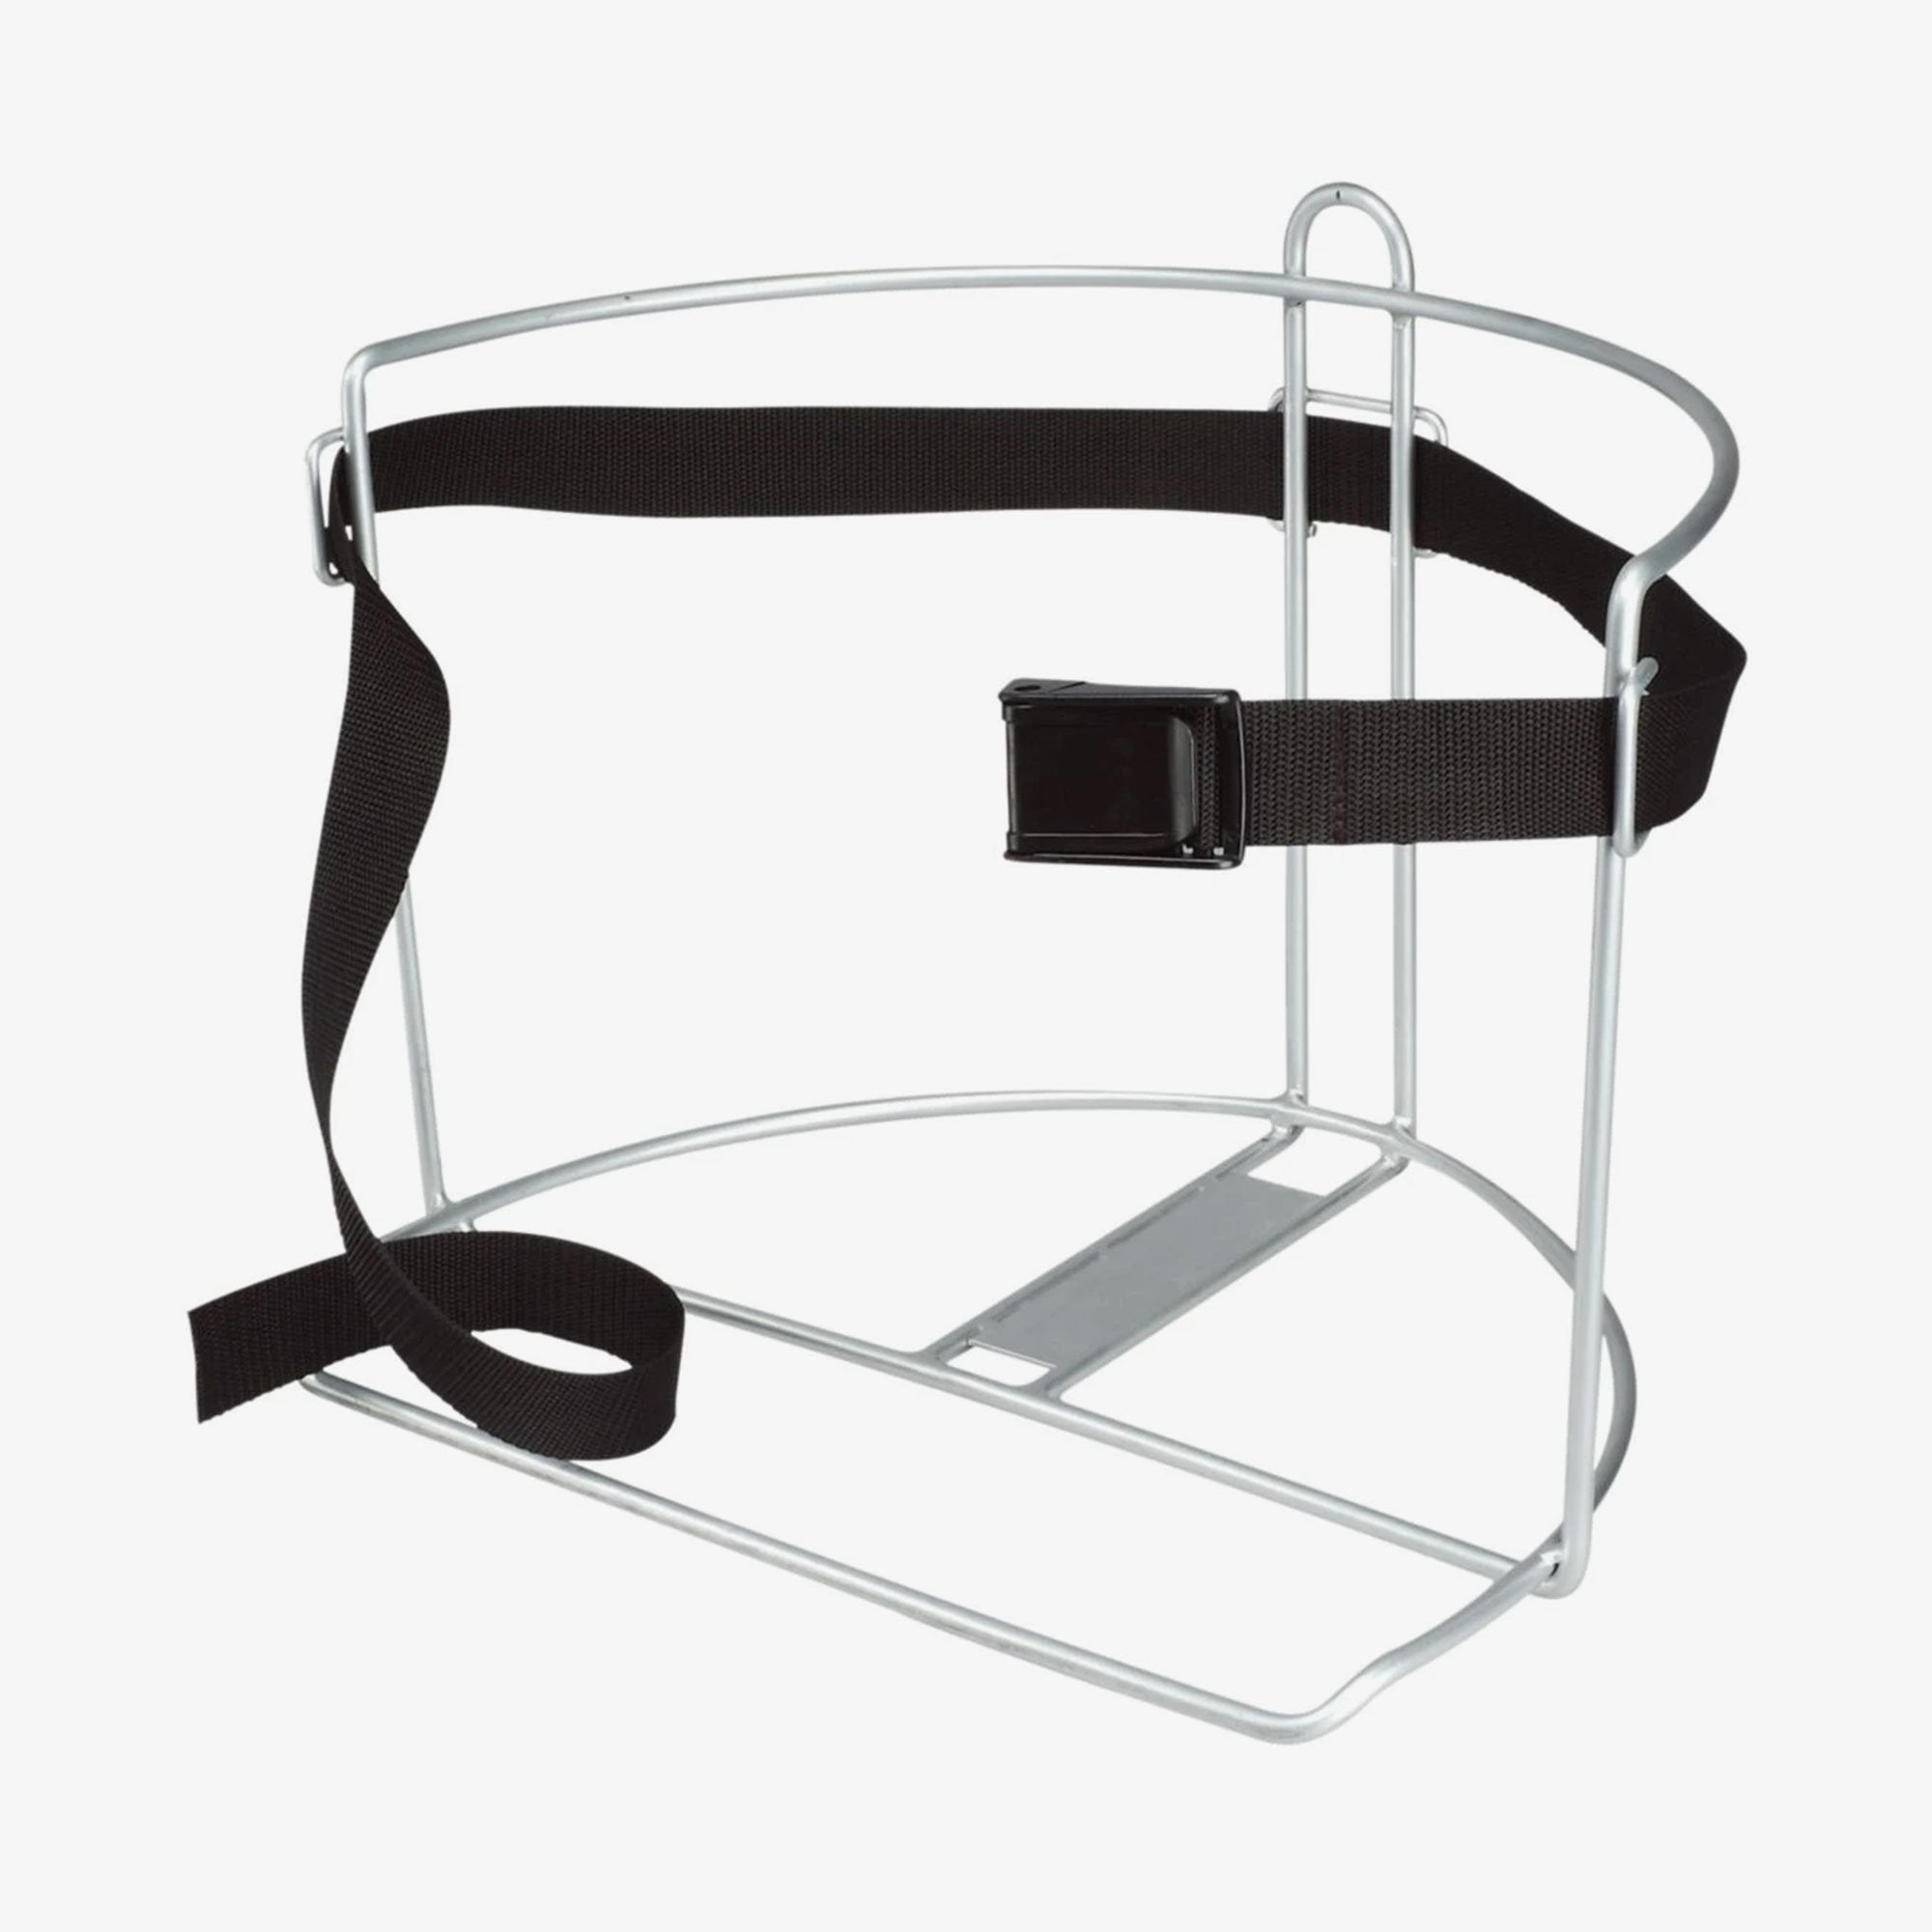 Large View | Wire Truck Rack For 10 Gallon Water Jug in Silver at Igloo Accessories